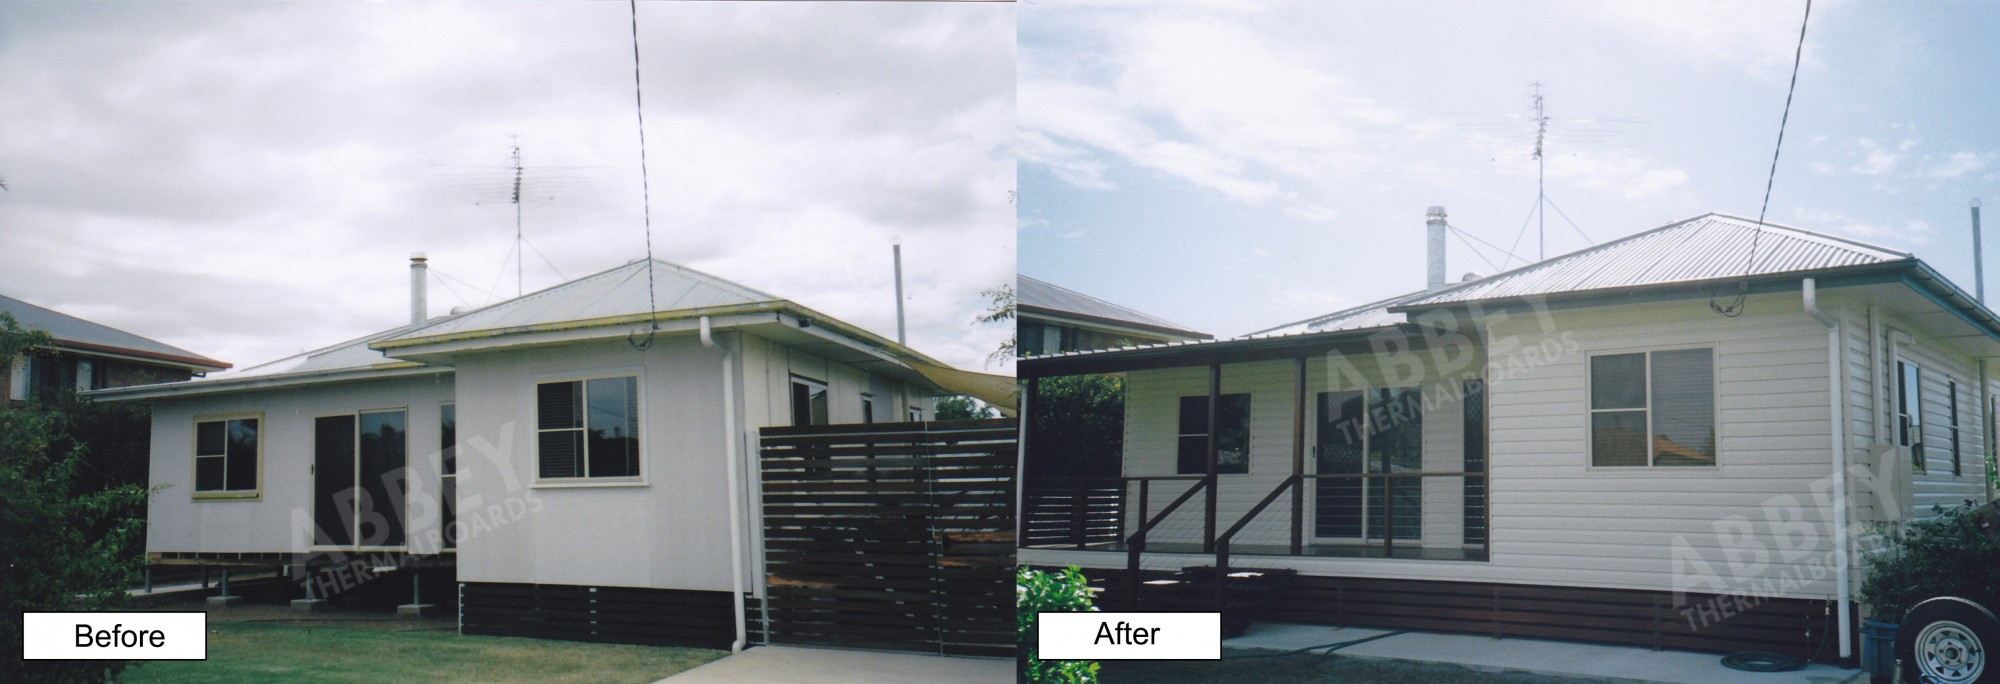 House cladding by Abbey Thermalboards showing vinyl cladding installation.